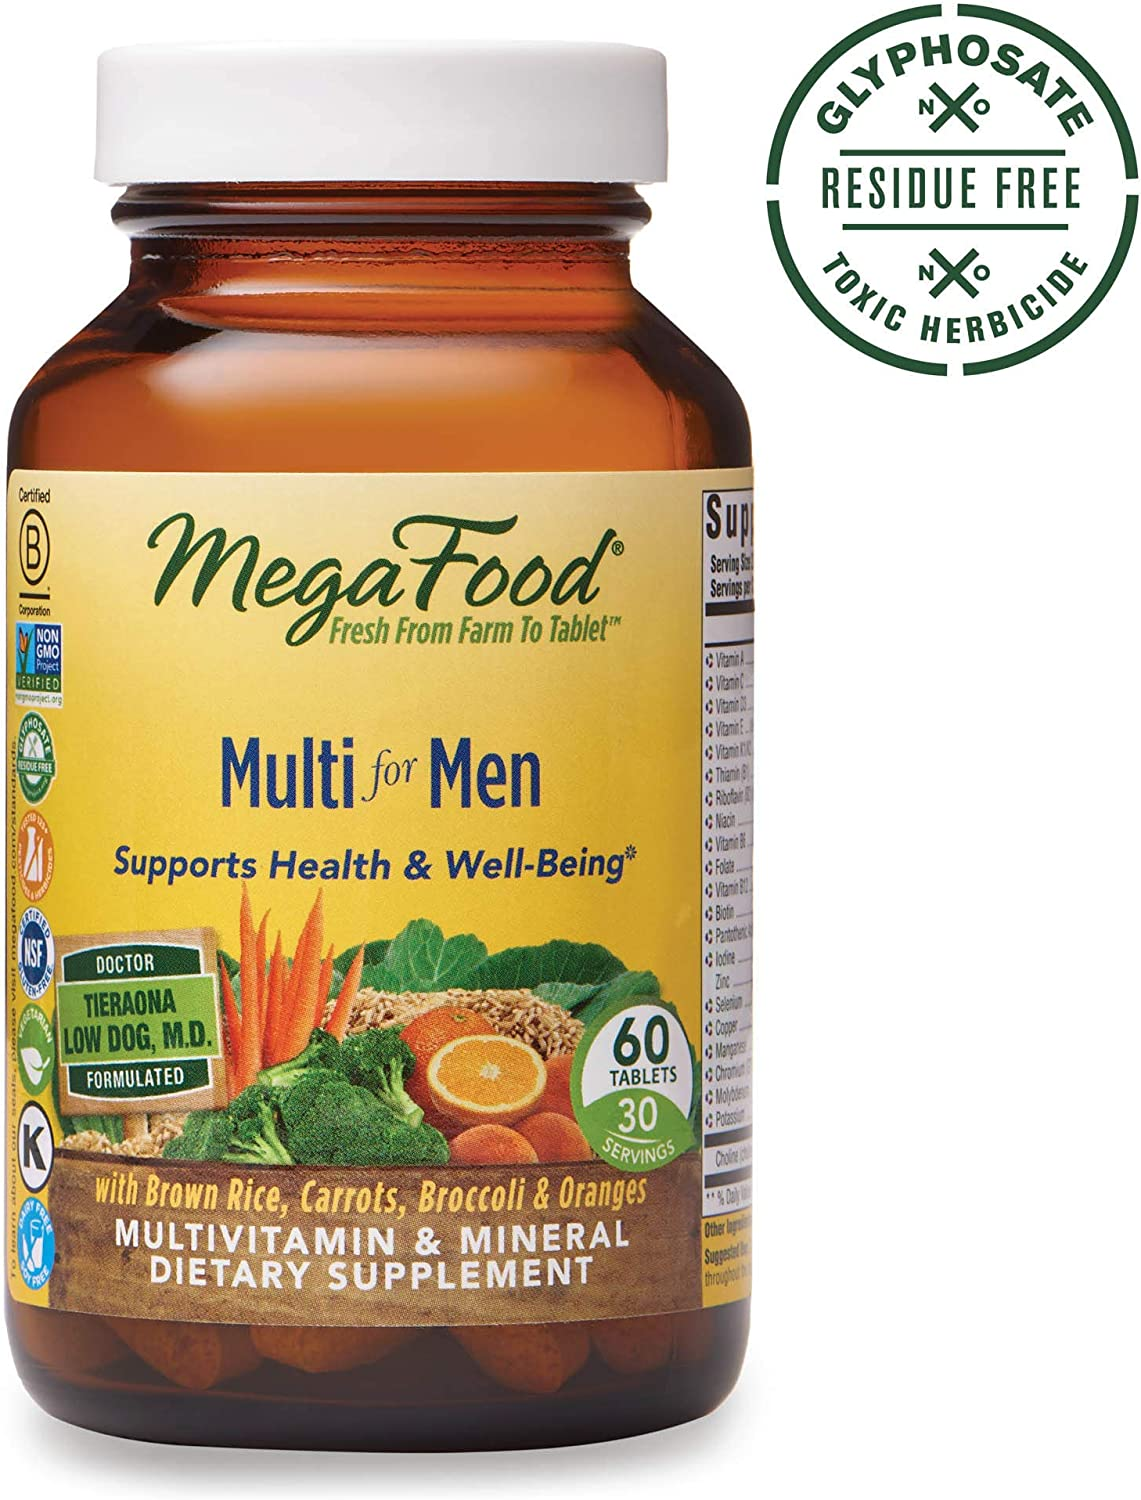 MegaFood, Multi for Men, Supports Optimal Health and Wellbeing, Multivitamin and Mineral Supplement, Gluten Free, Vegetarian, 60 tablets 30 servings